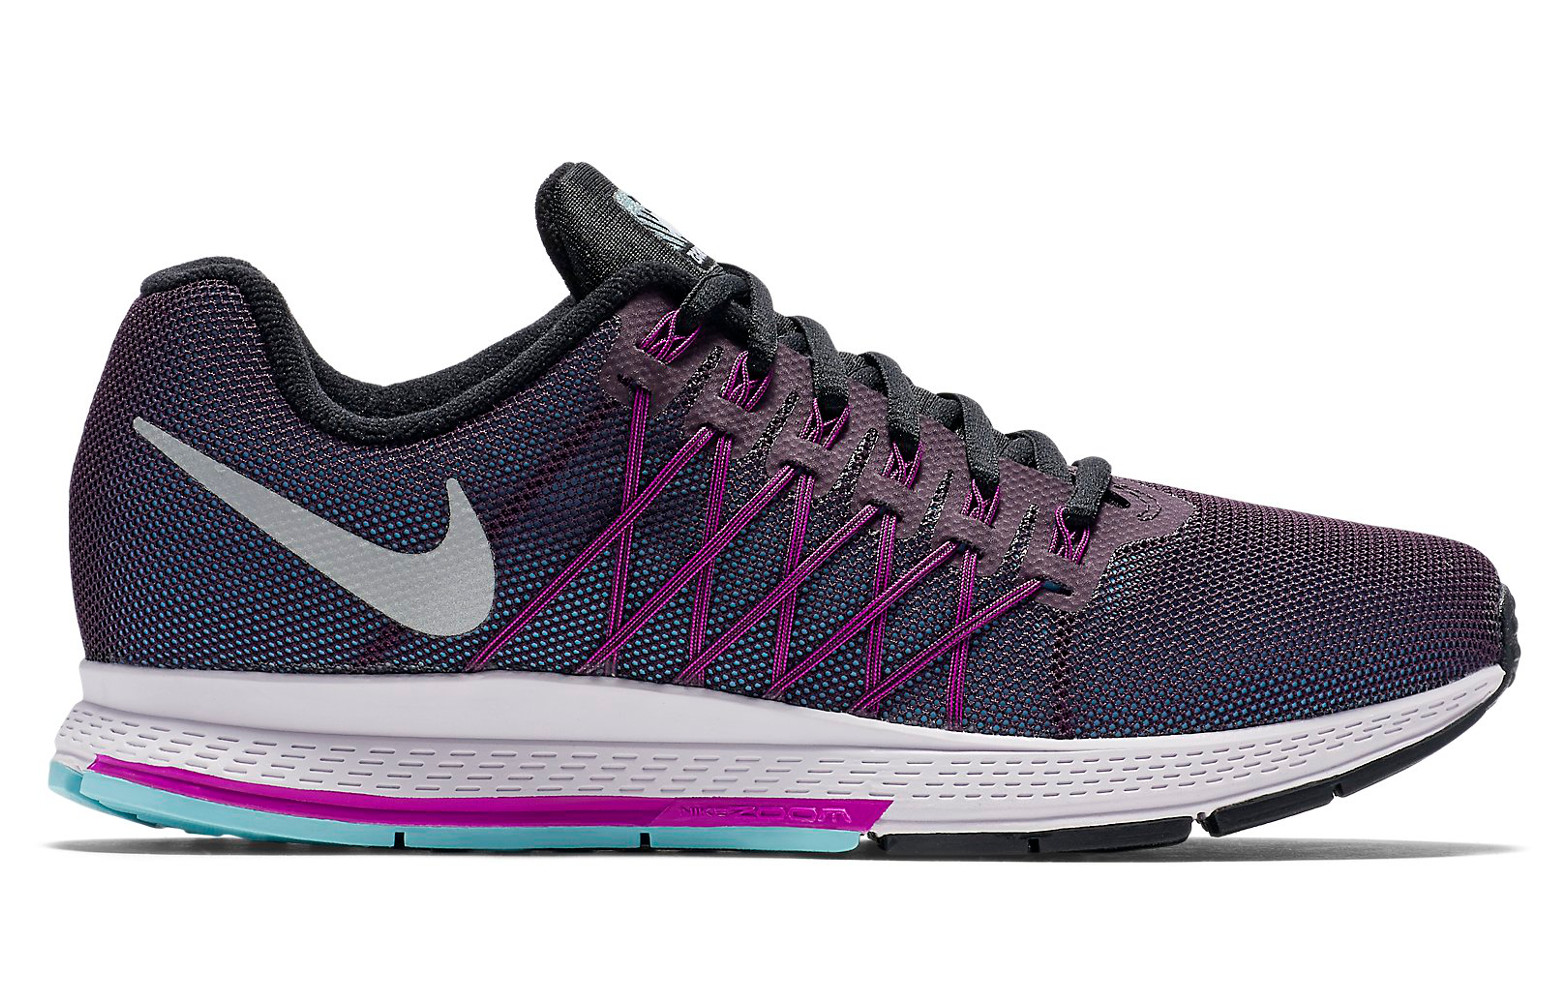 Nike Air Zoom Pegasus 32 Flash Vitesse Violet fiable ATkcjWa